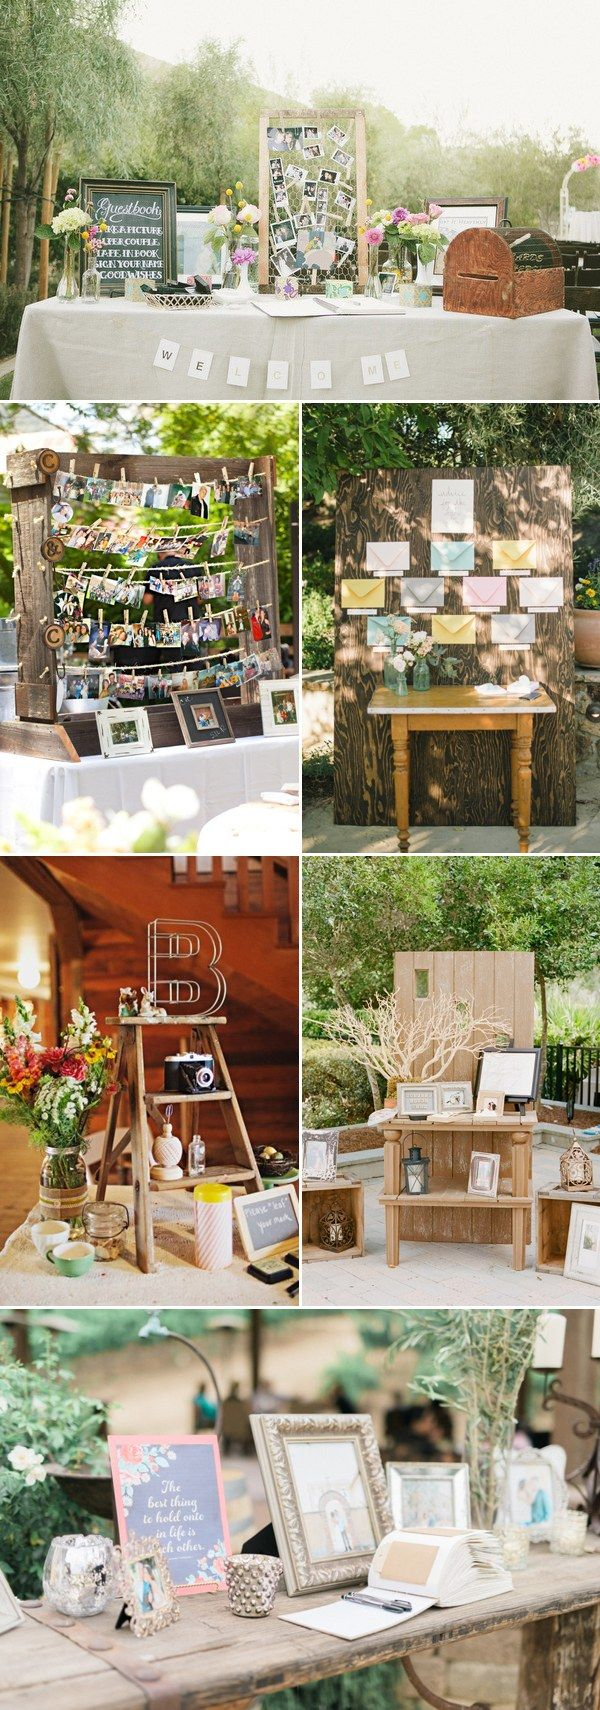 rustic wedding guest book & sign-in wedding decor / http://www.deerpearlflowers.com/35-creative-guestbook-and-sign-in-wedding-table-decor-ideas/